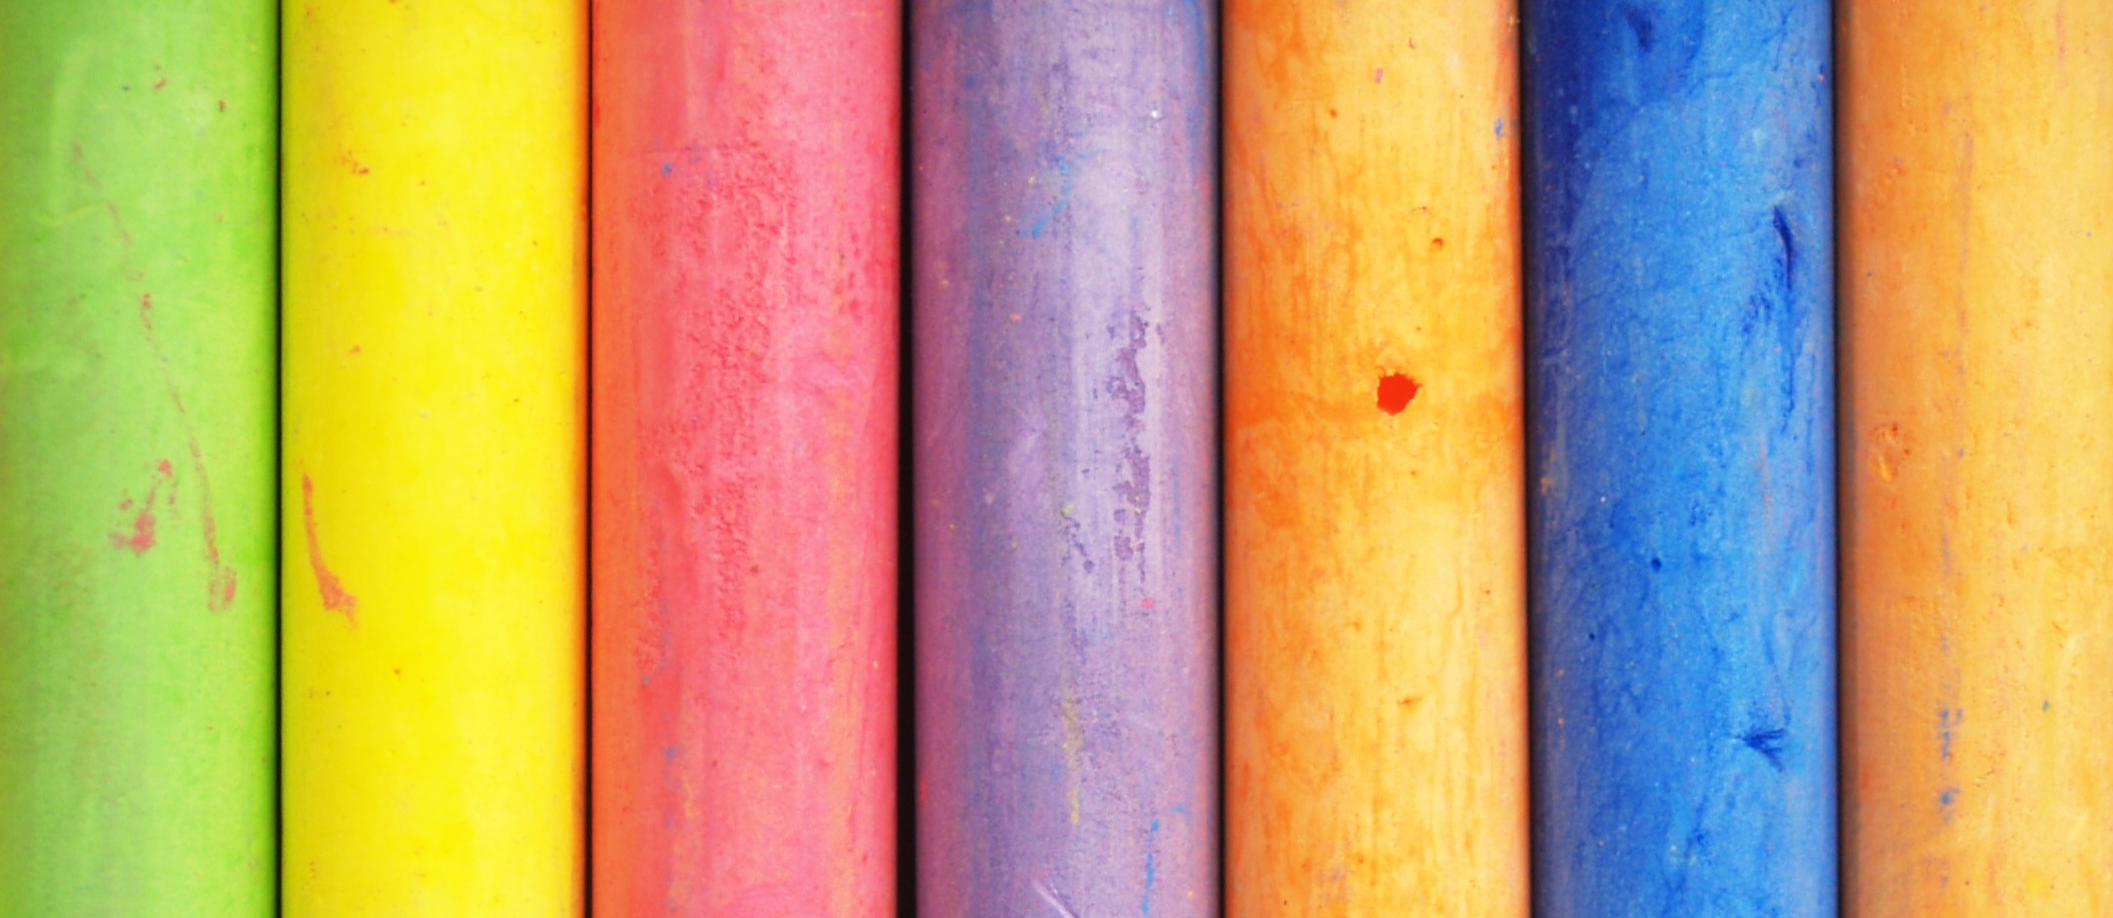 A row of colorful chalk